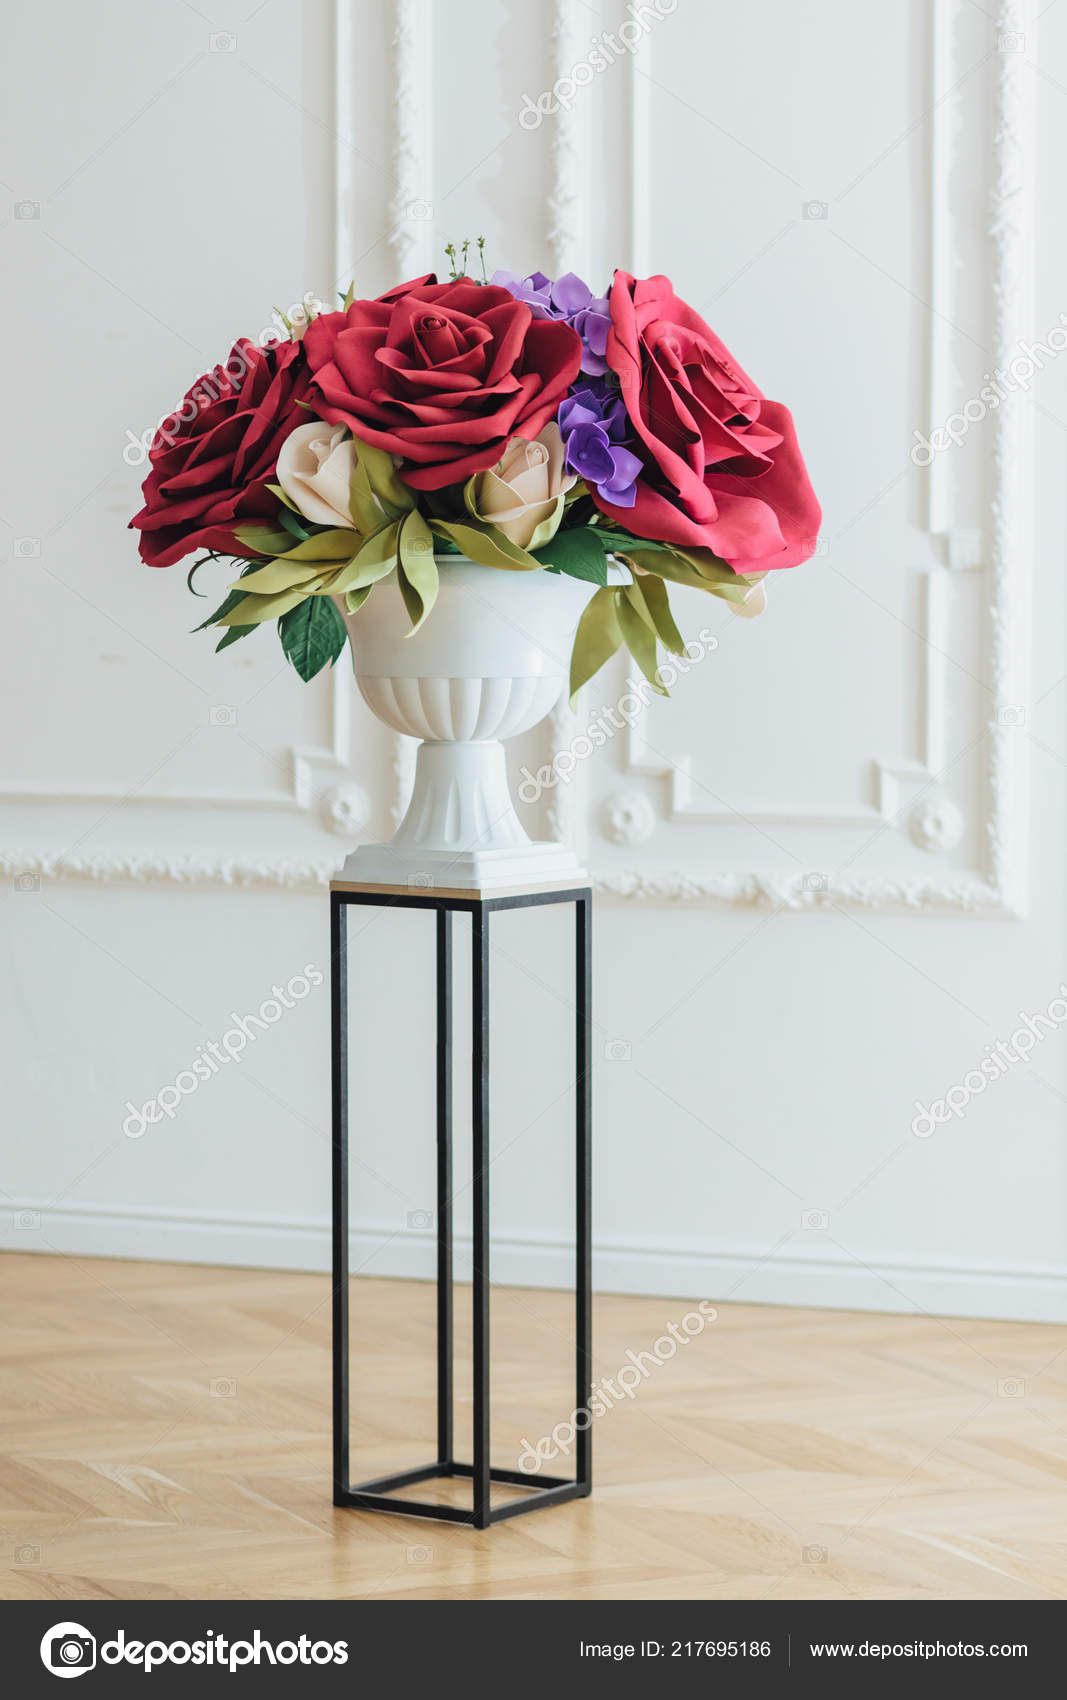 Bouquet Flowers Festive Event Beautiful Big Red Roses White